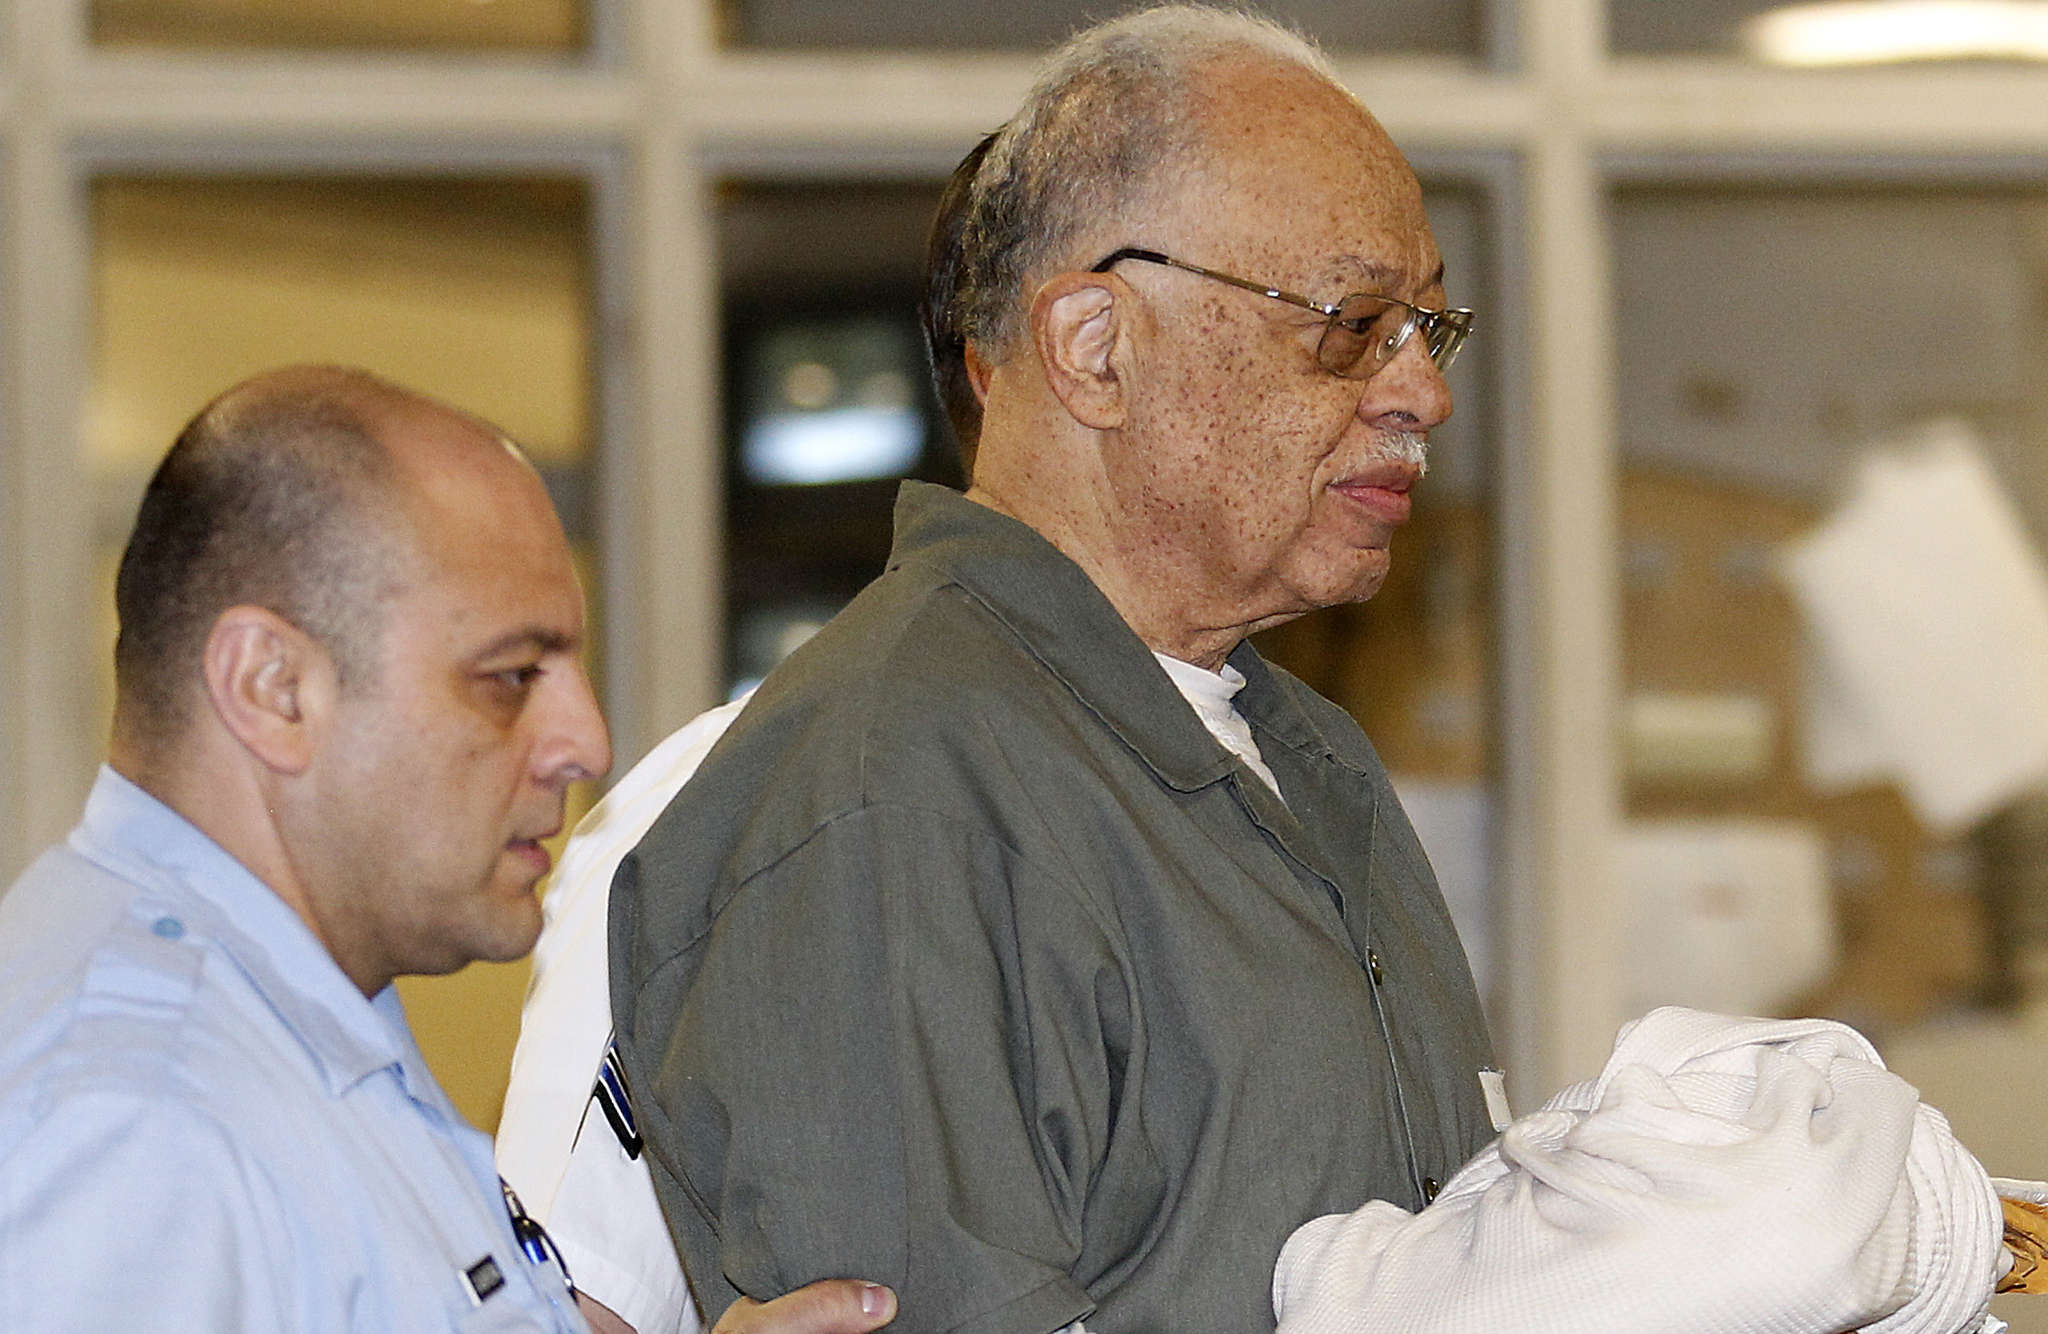 Predators like Kermit Gosnell could benefit if the Supreme Court upholds Texas´ law making it more difficult for a woman get an abortion.